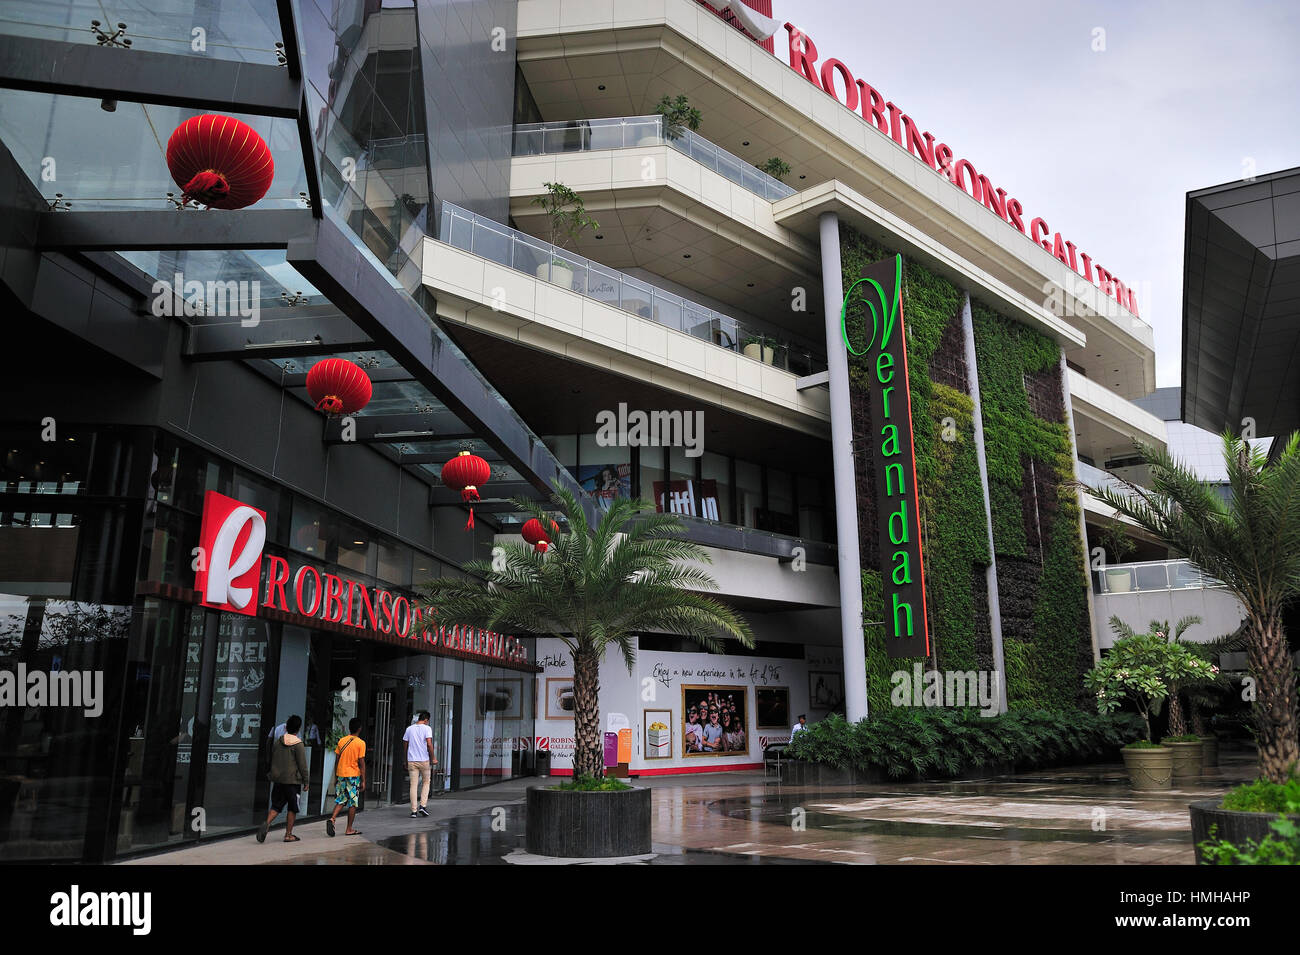 342f4806940 Robinsons Shopping Mall Stock Photos   Robinsons Shopping Mall Stock ...